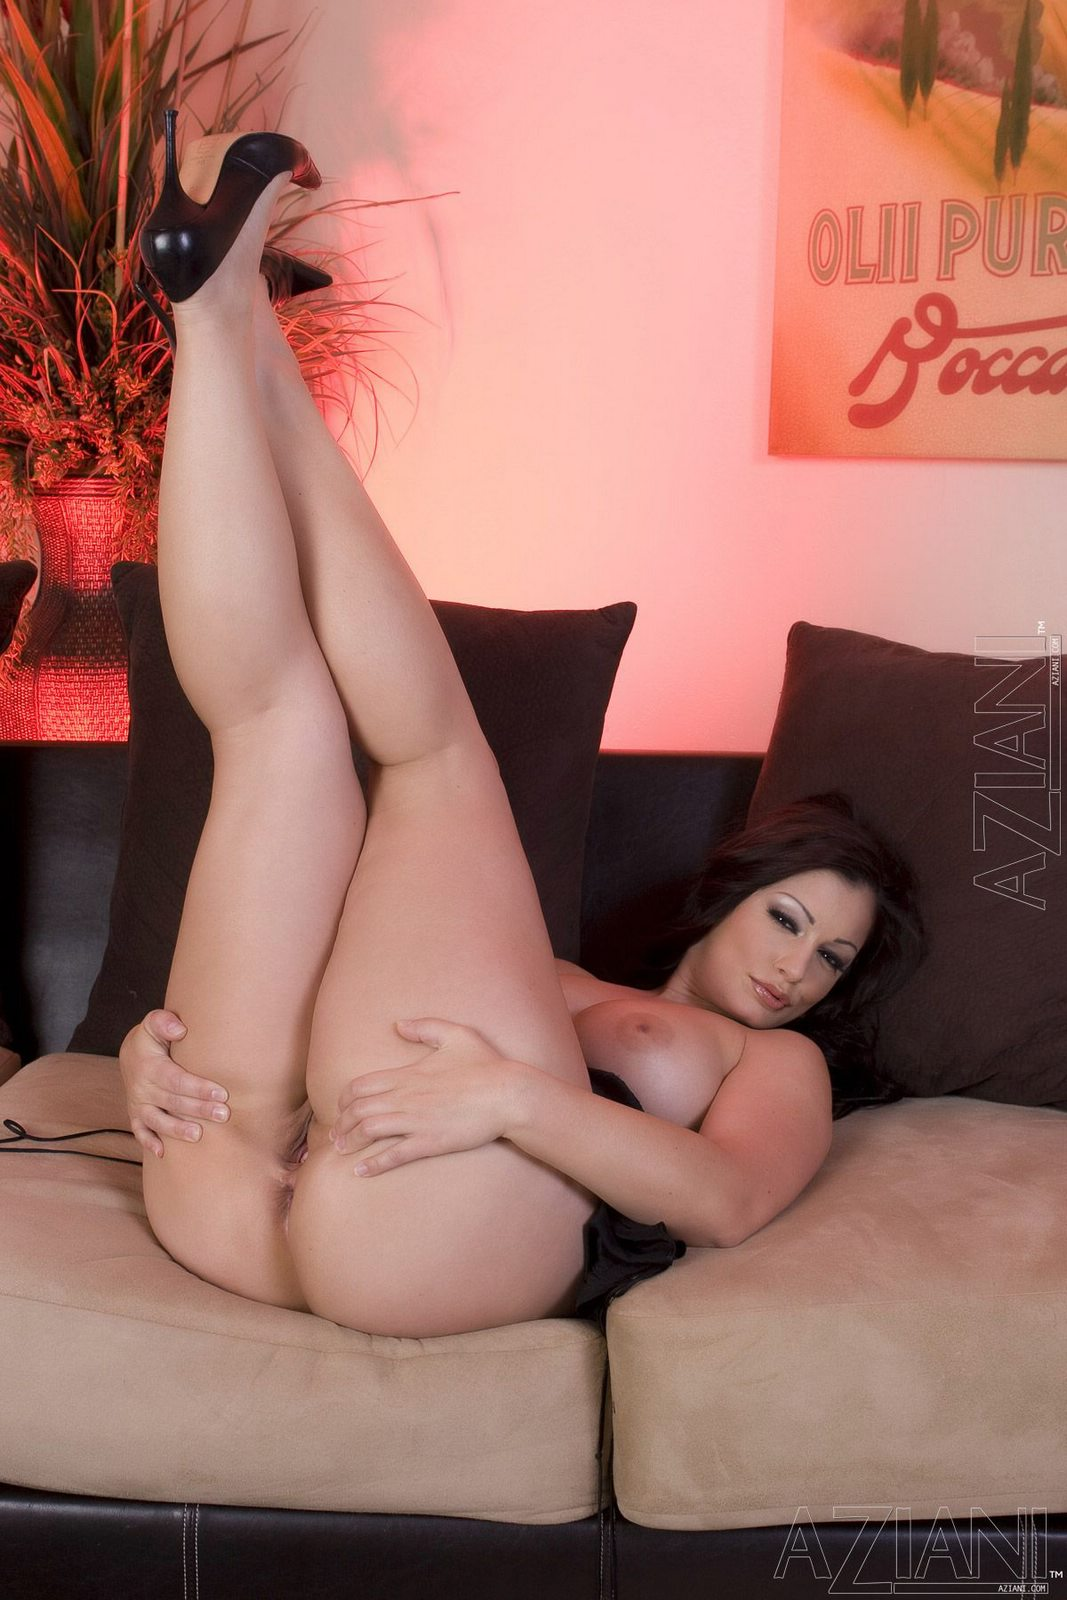 Really surprises. Aria giovanni ass fucked shall agree